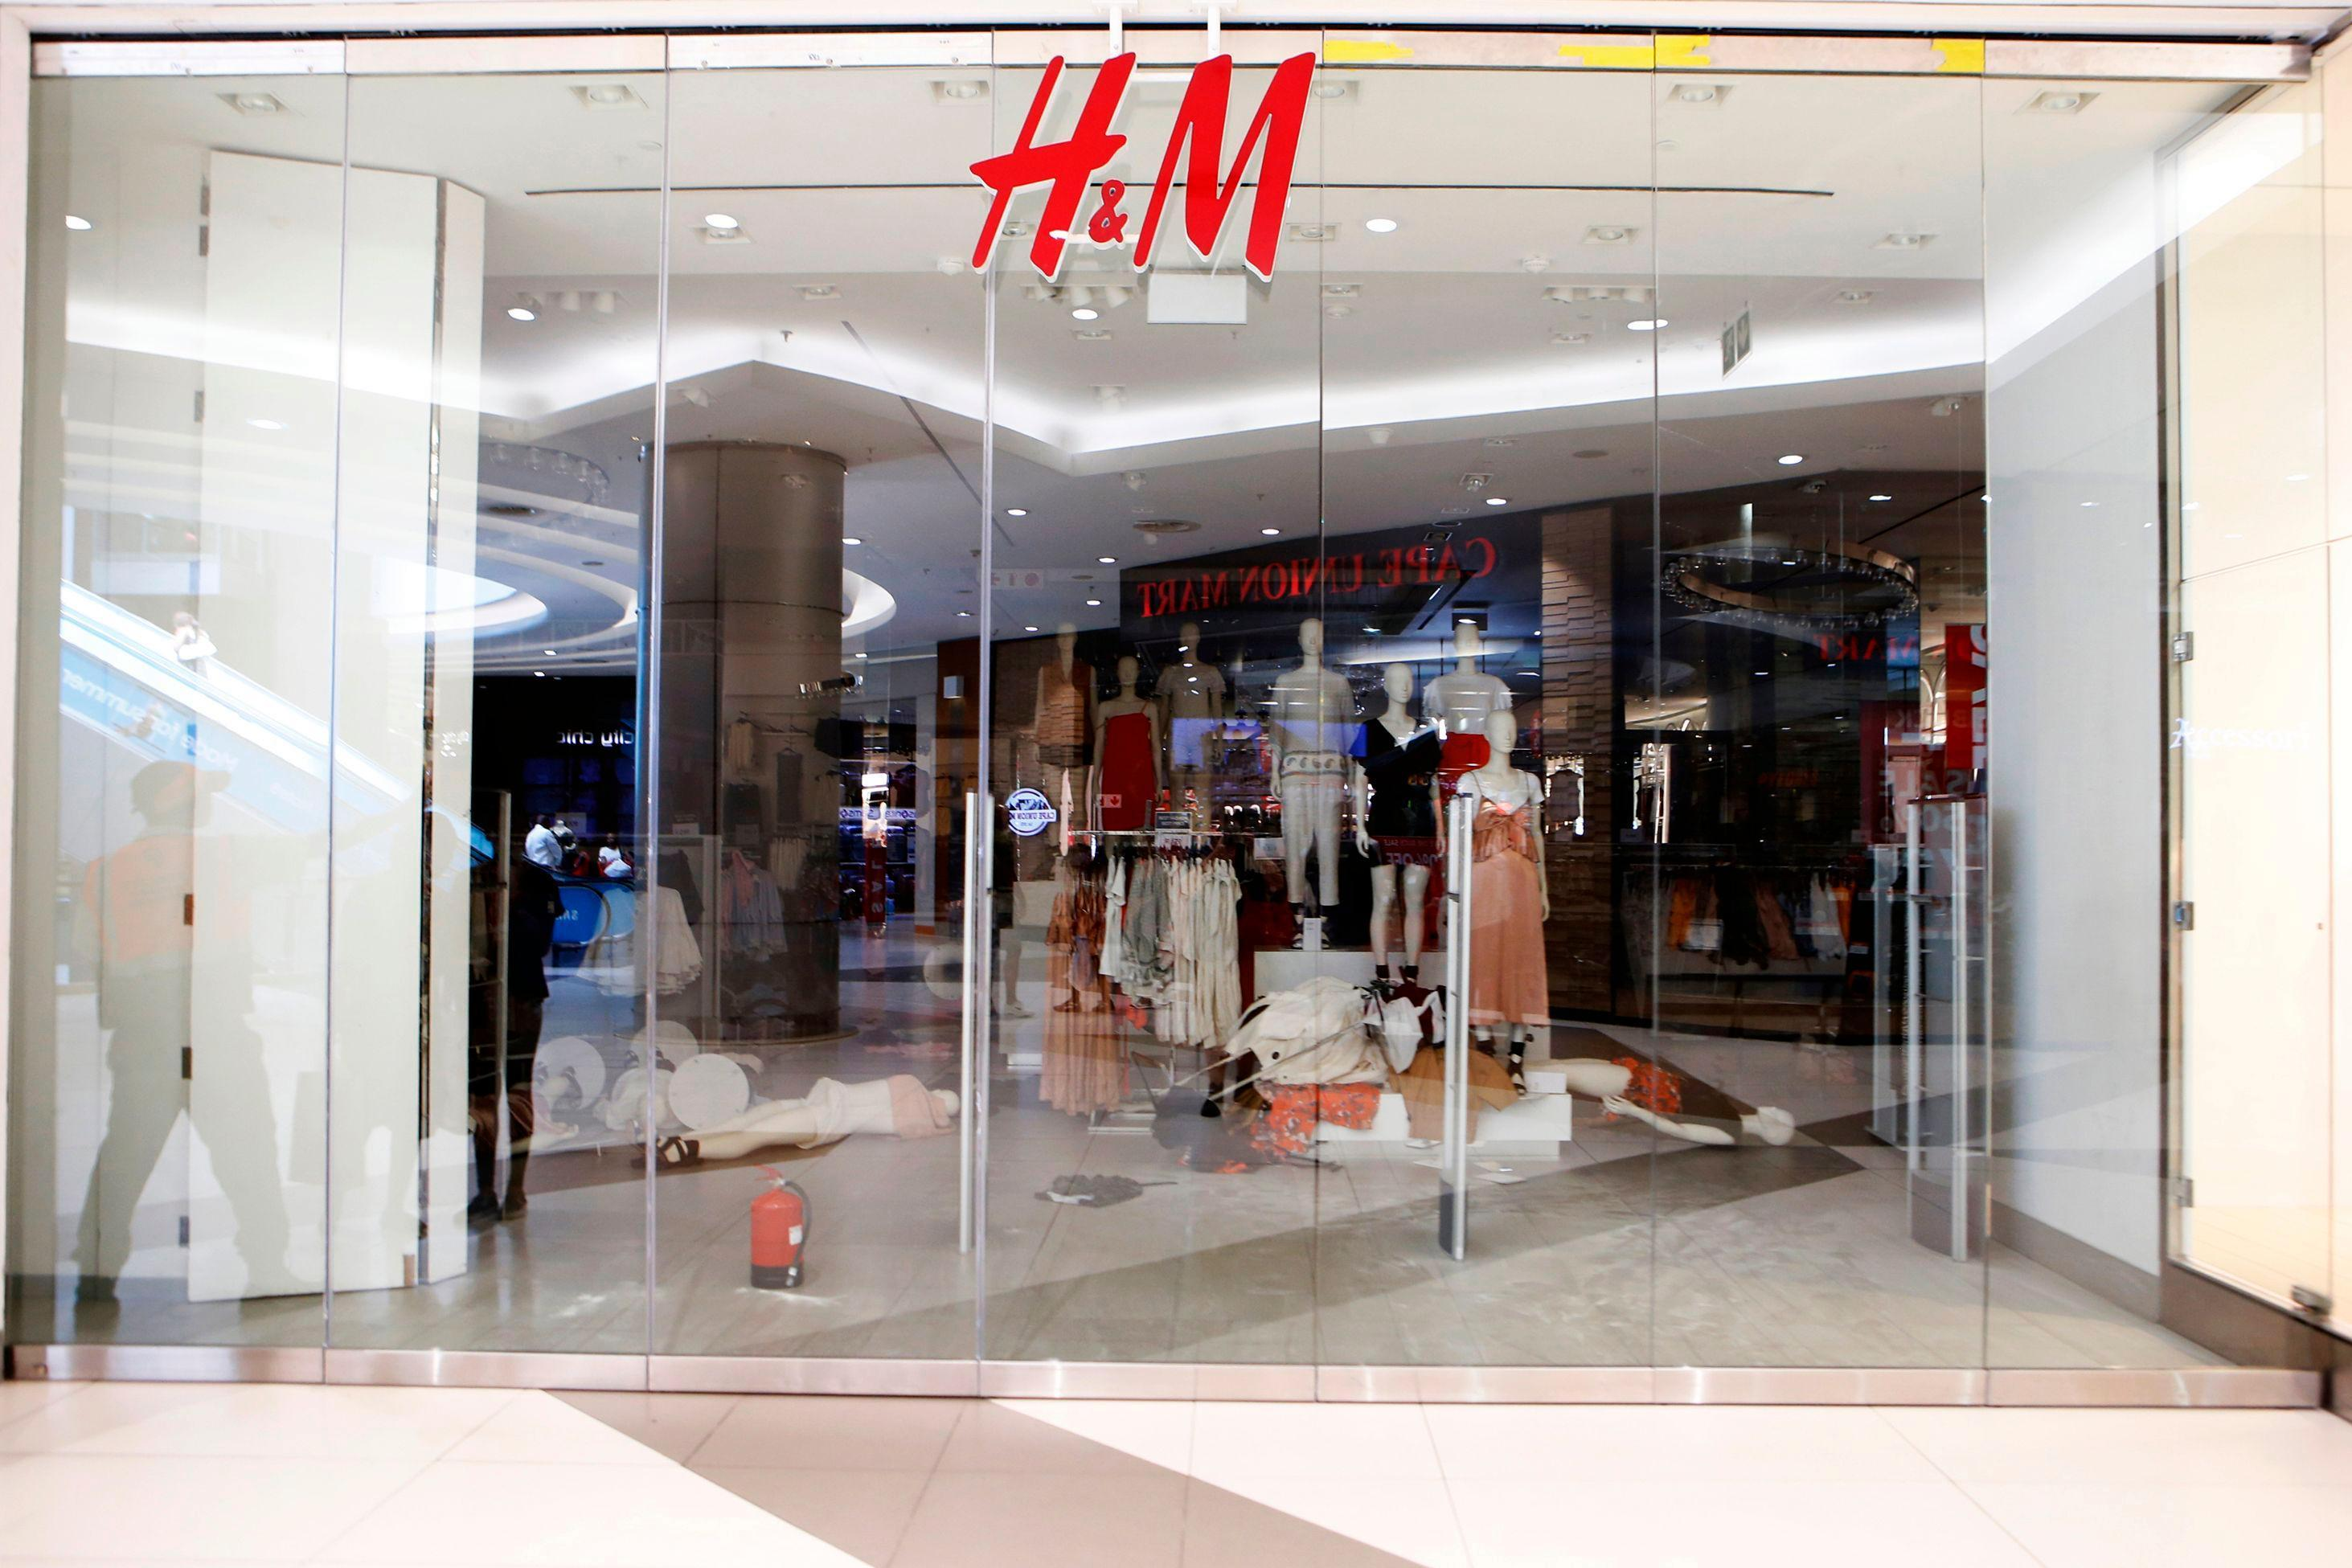 Family of H&M child model moved house 'for security'